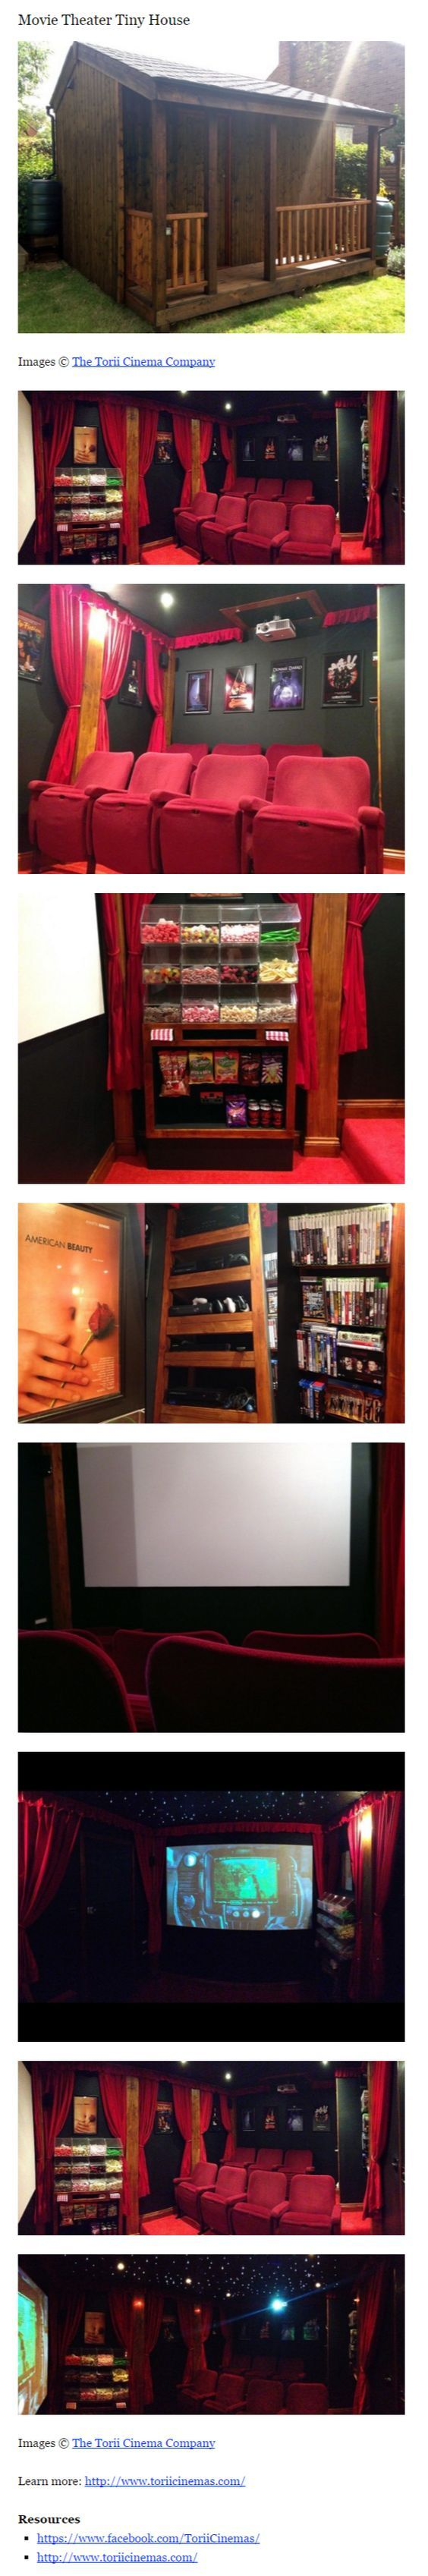 Movie Theater Tiny House on OCTOBER 31, 2015 Read more at tinyhousetalk.com…